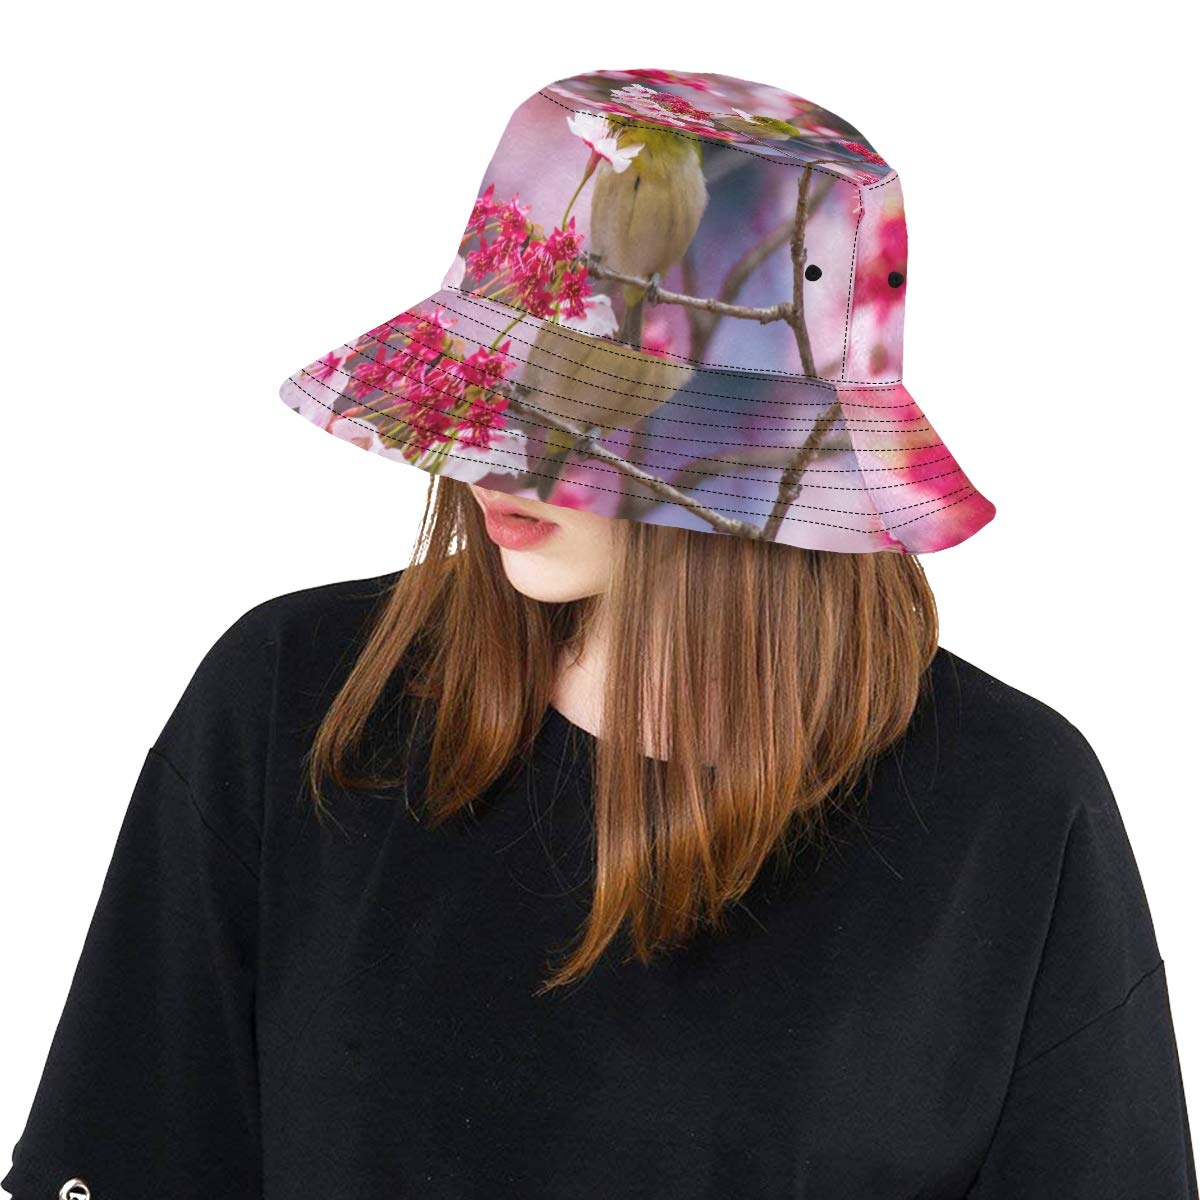 Women and Men with Customize Top Packable Fisherman Cap for Outdoor Travel Japanese Bird with Sakura New Summer Unisex Cotton Fashion Fishing Sun Bucket Hats for Kid Teens